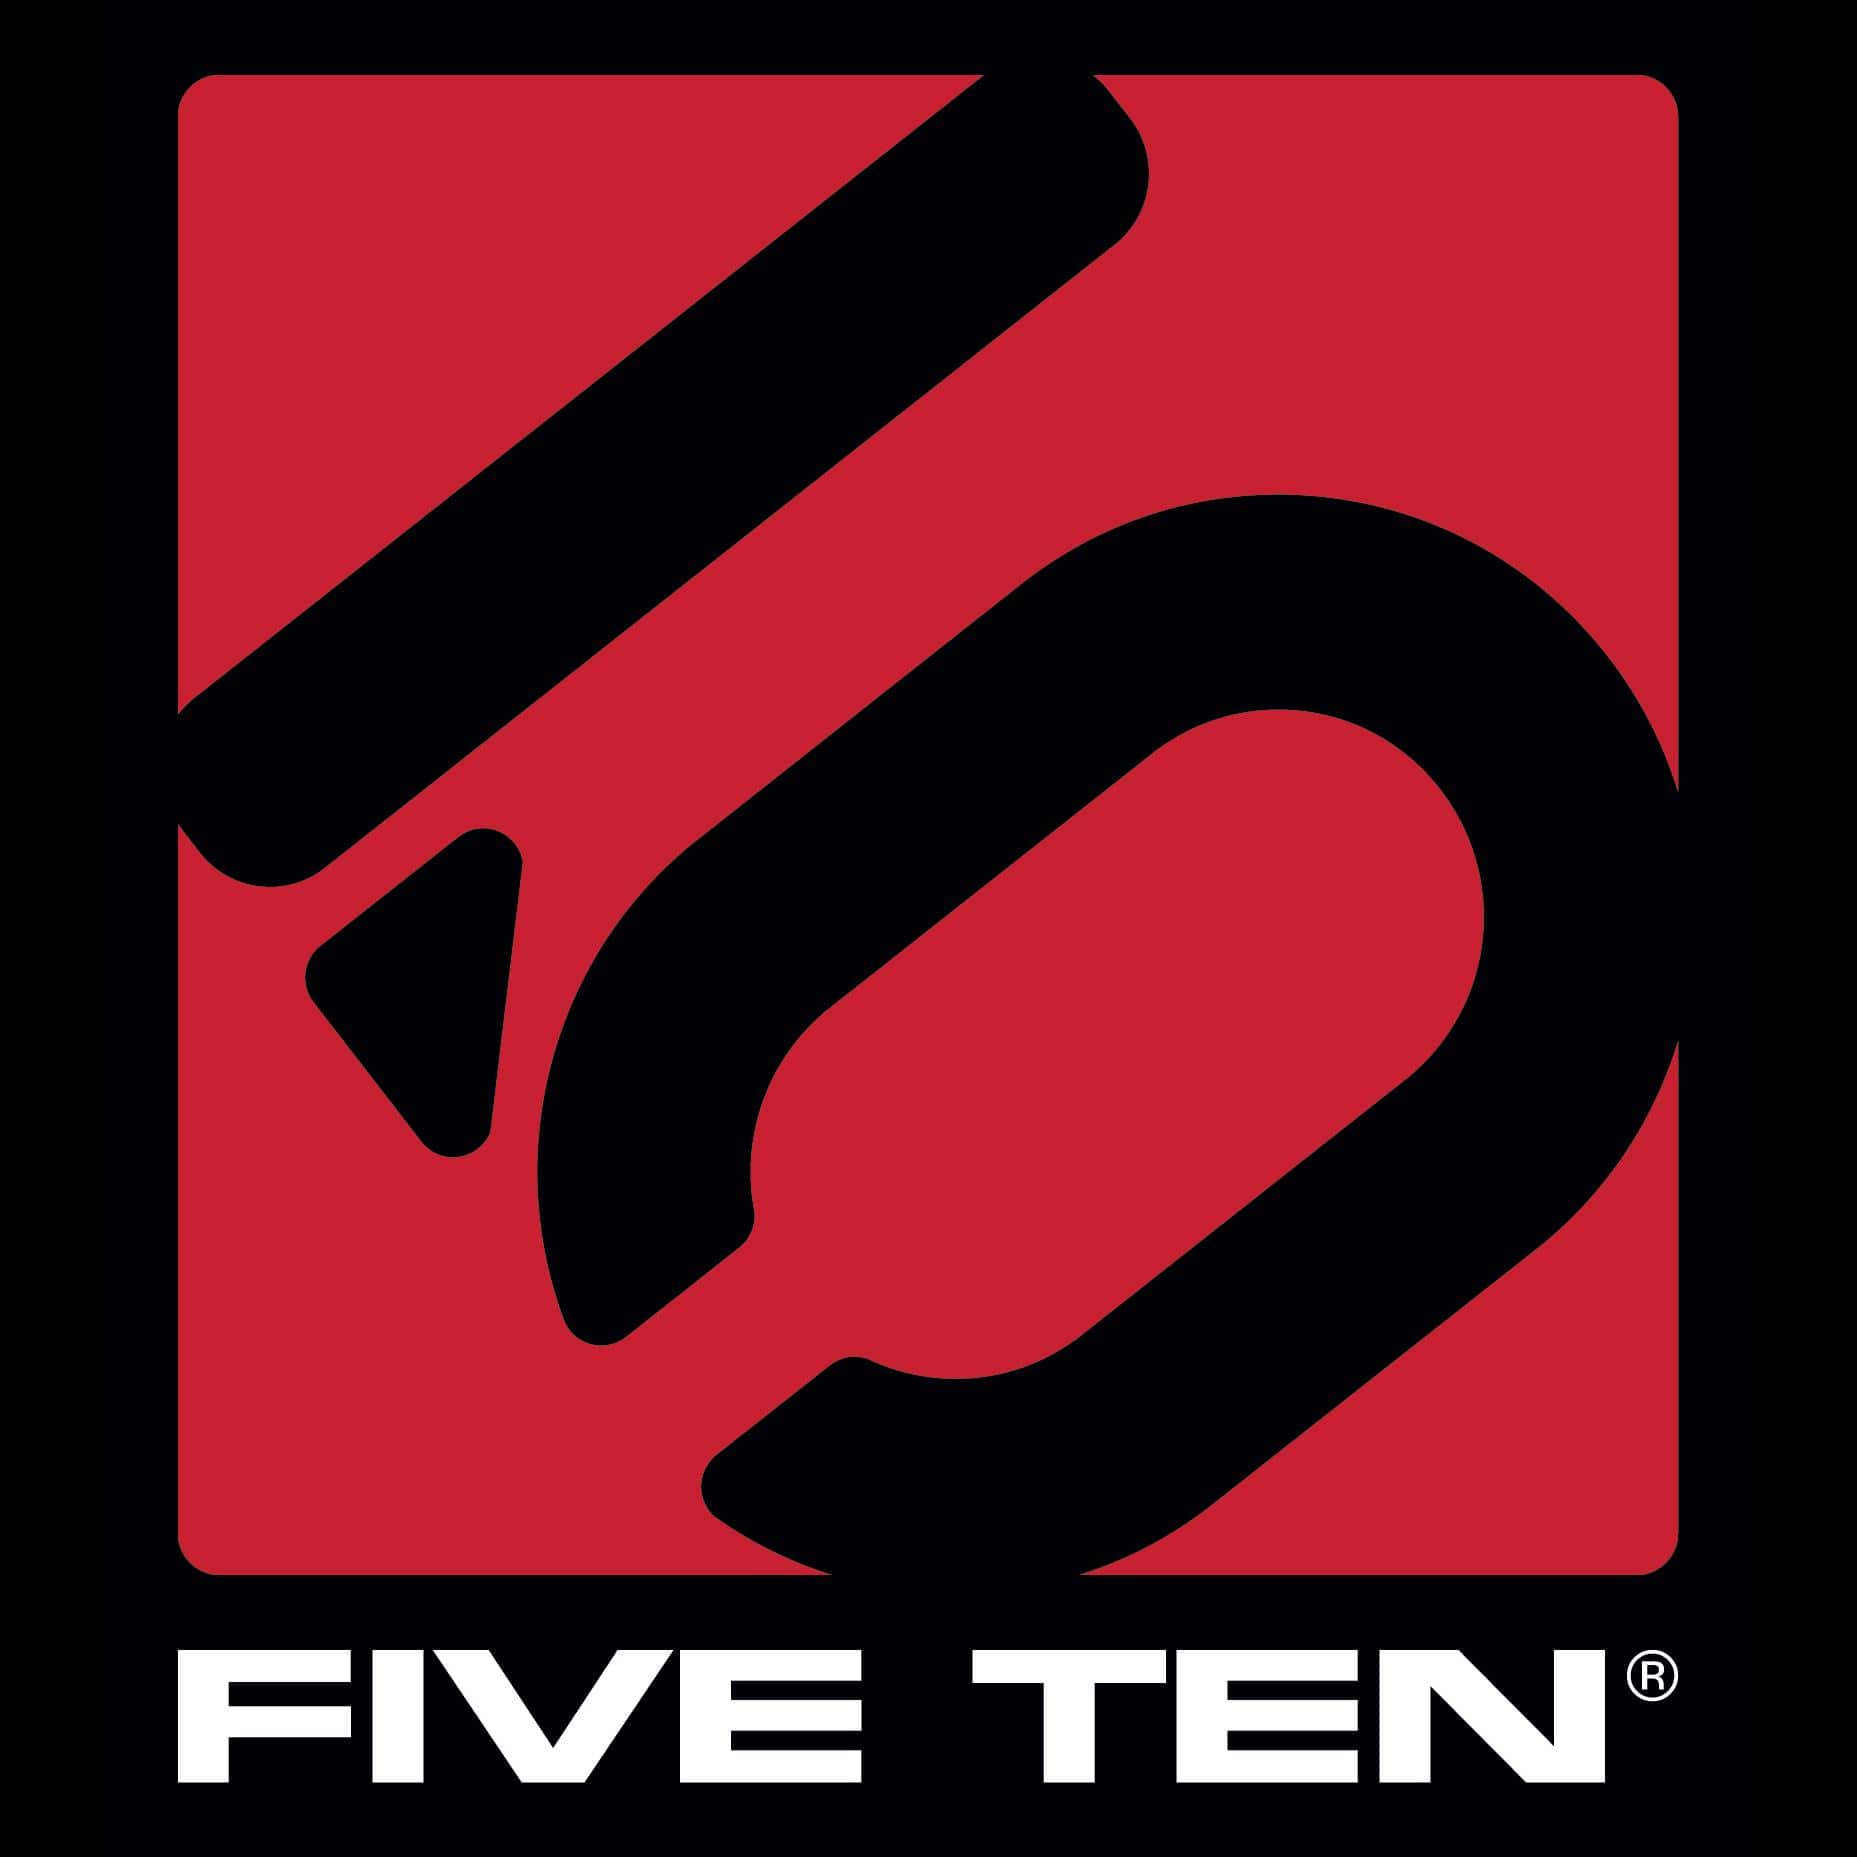 FIVE TEN 5-10 Rock climbing Shoes, Biking Shoes, and various apparel Additional 20% off clearance